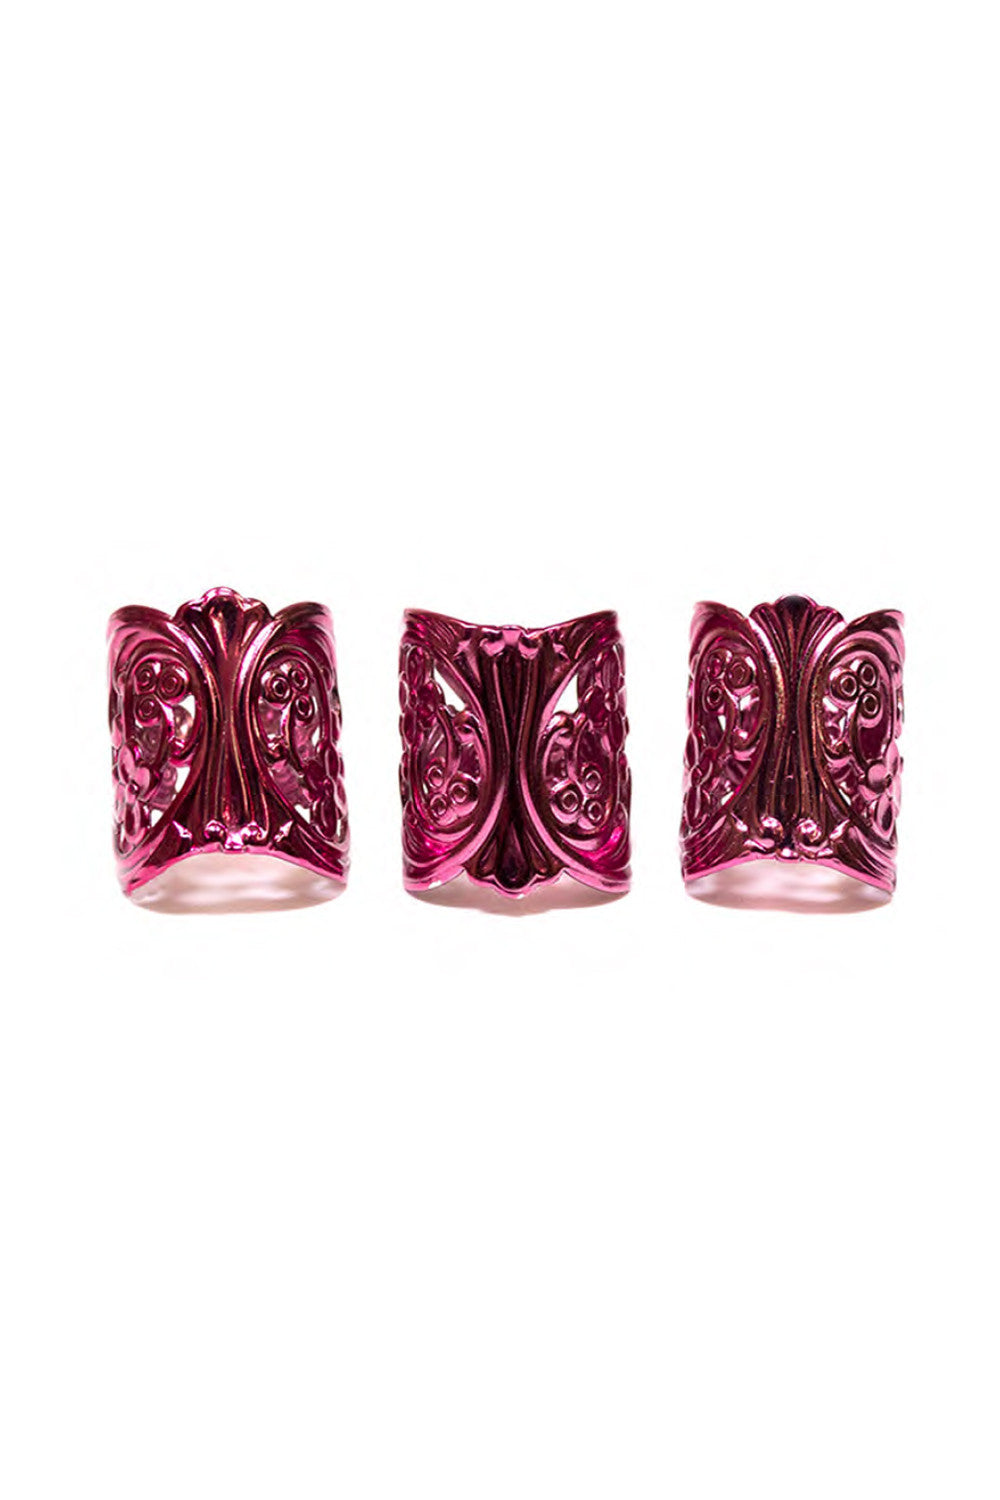 LACE CUFF ® RINGS IN FUSCHIA (SET OF 3)